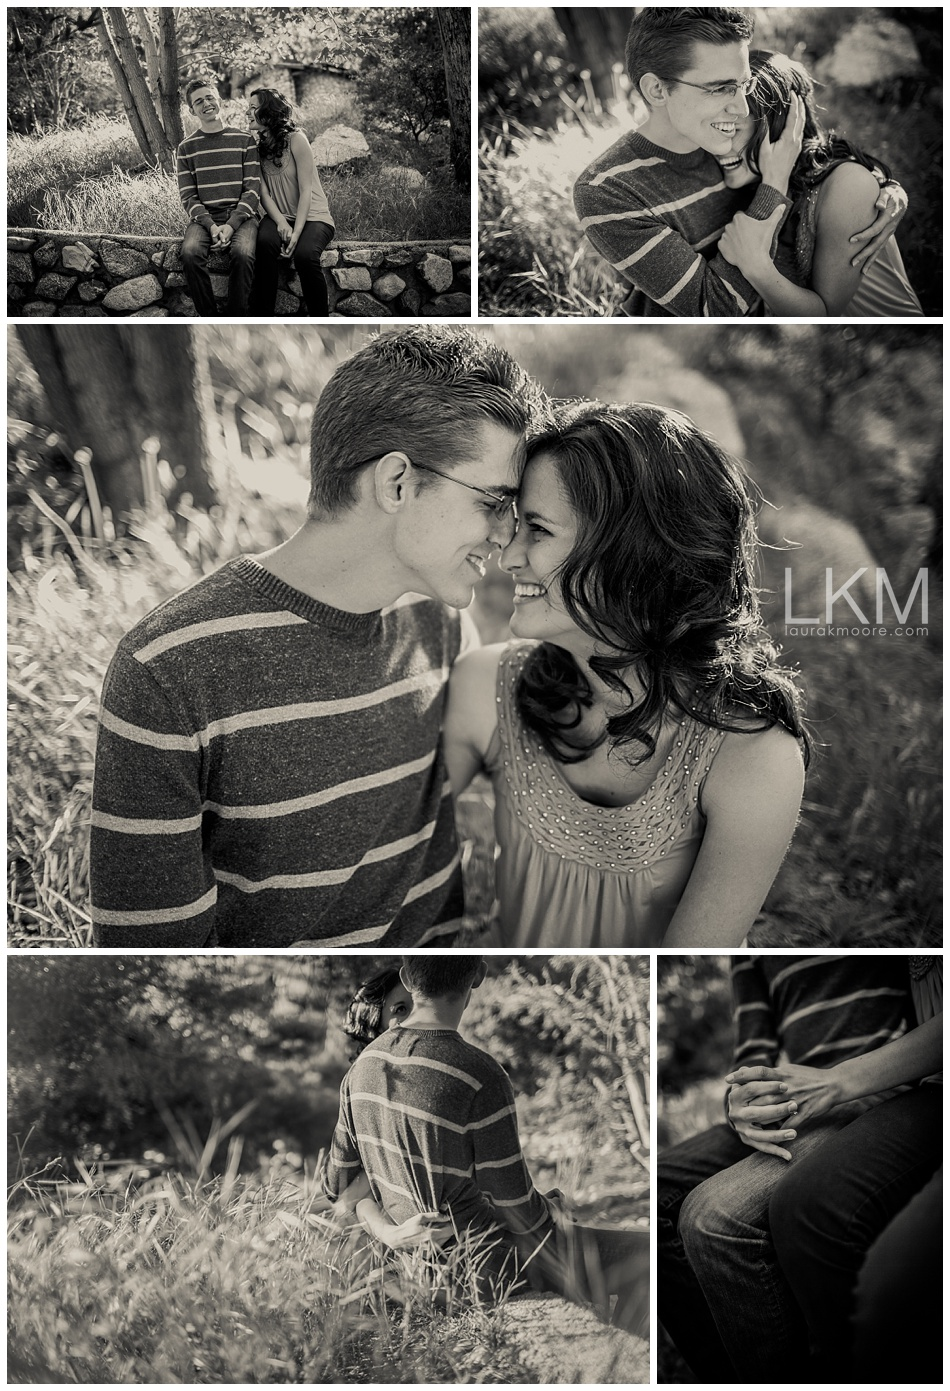 Nathan-Emily-Mt-Baldy-Engagement-Session-Los-Angeles-Wedding-Photographer_0001.jpg